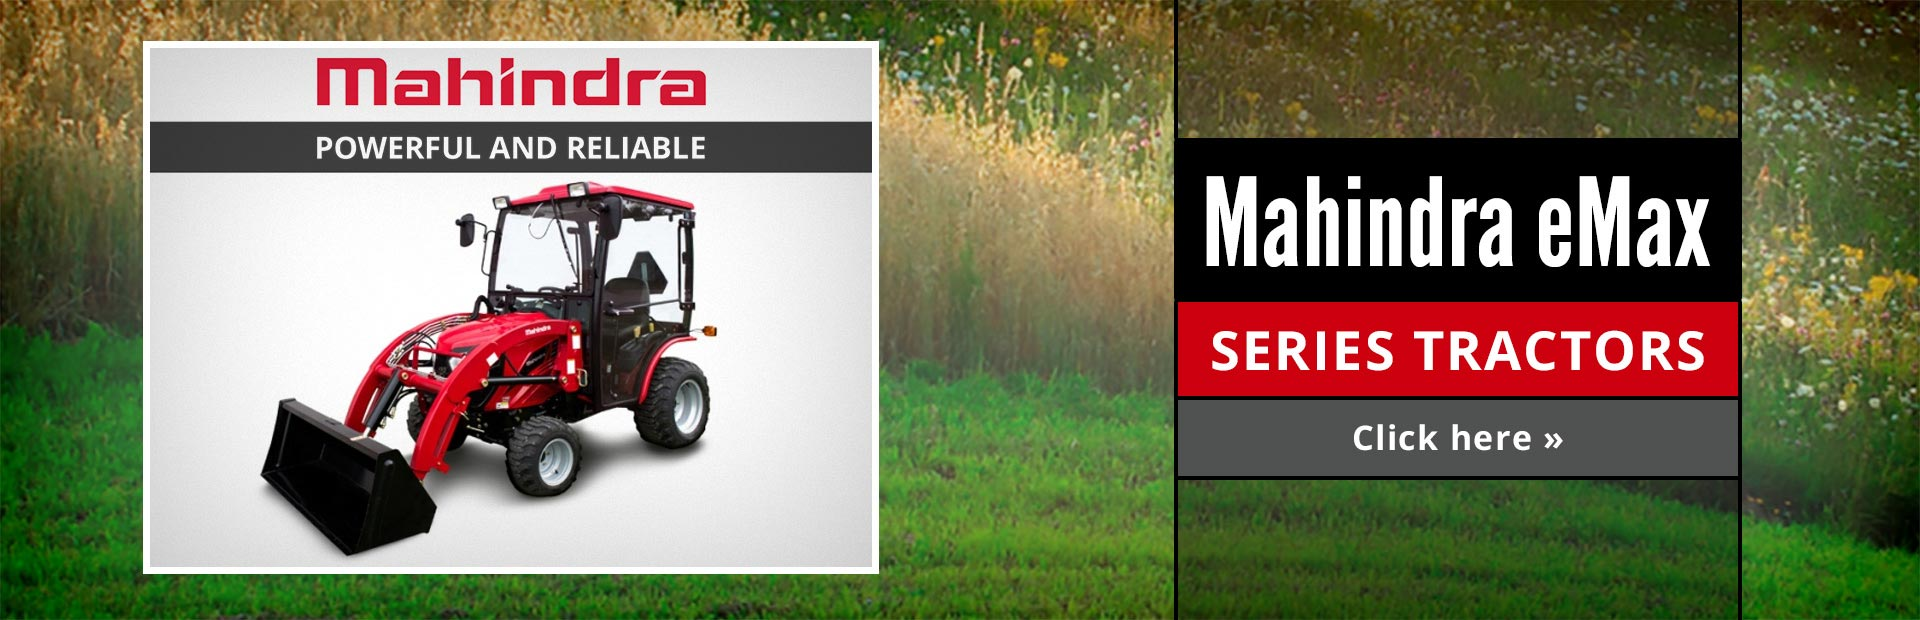 Click here to view our selection of Mahindra eMax series tractors!